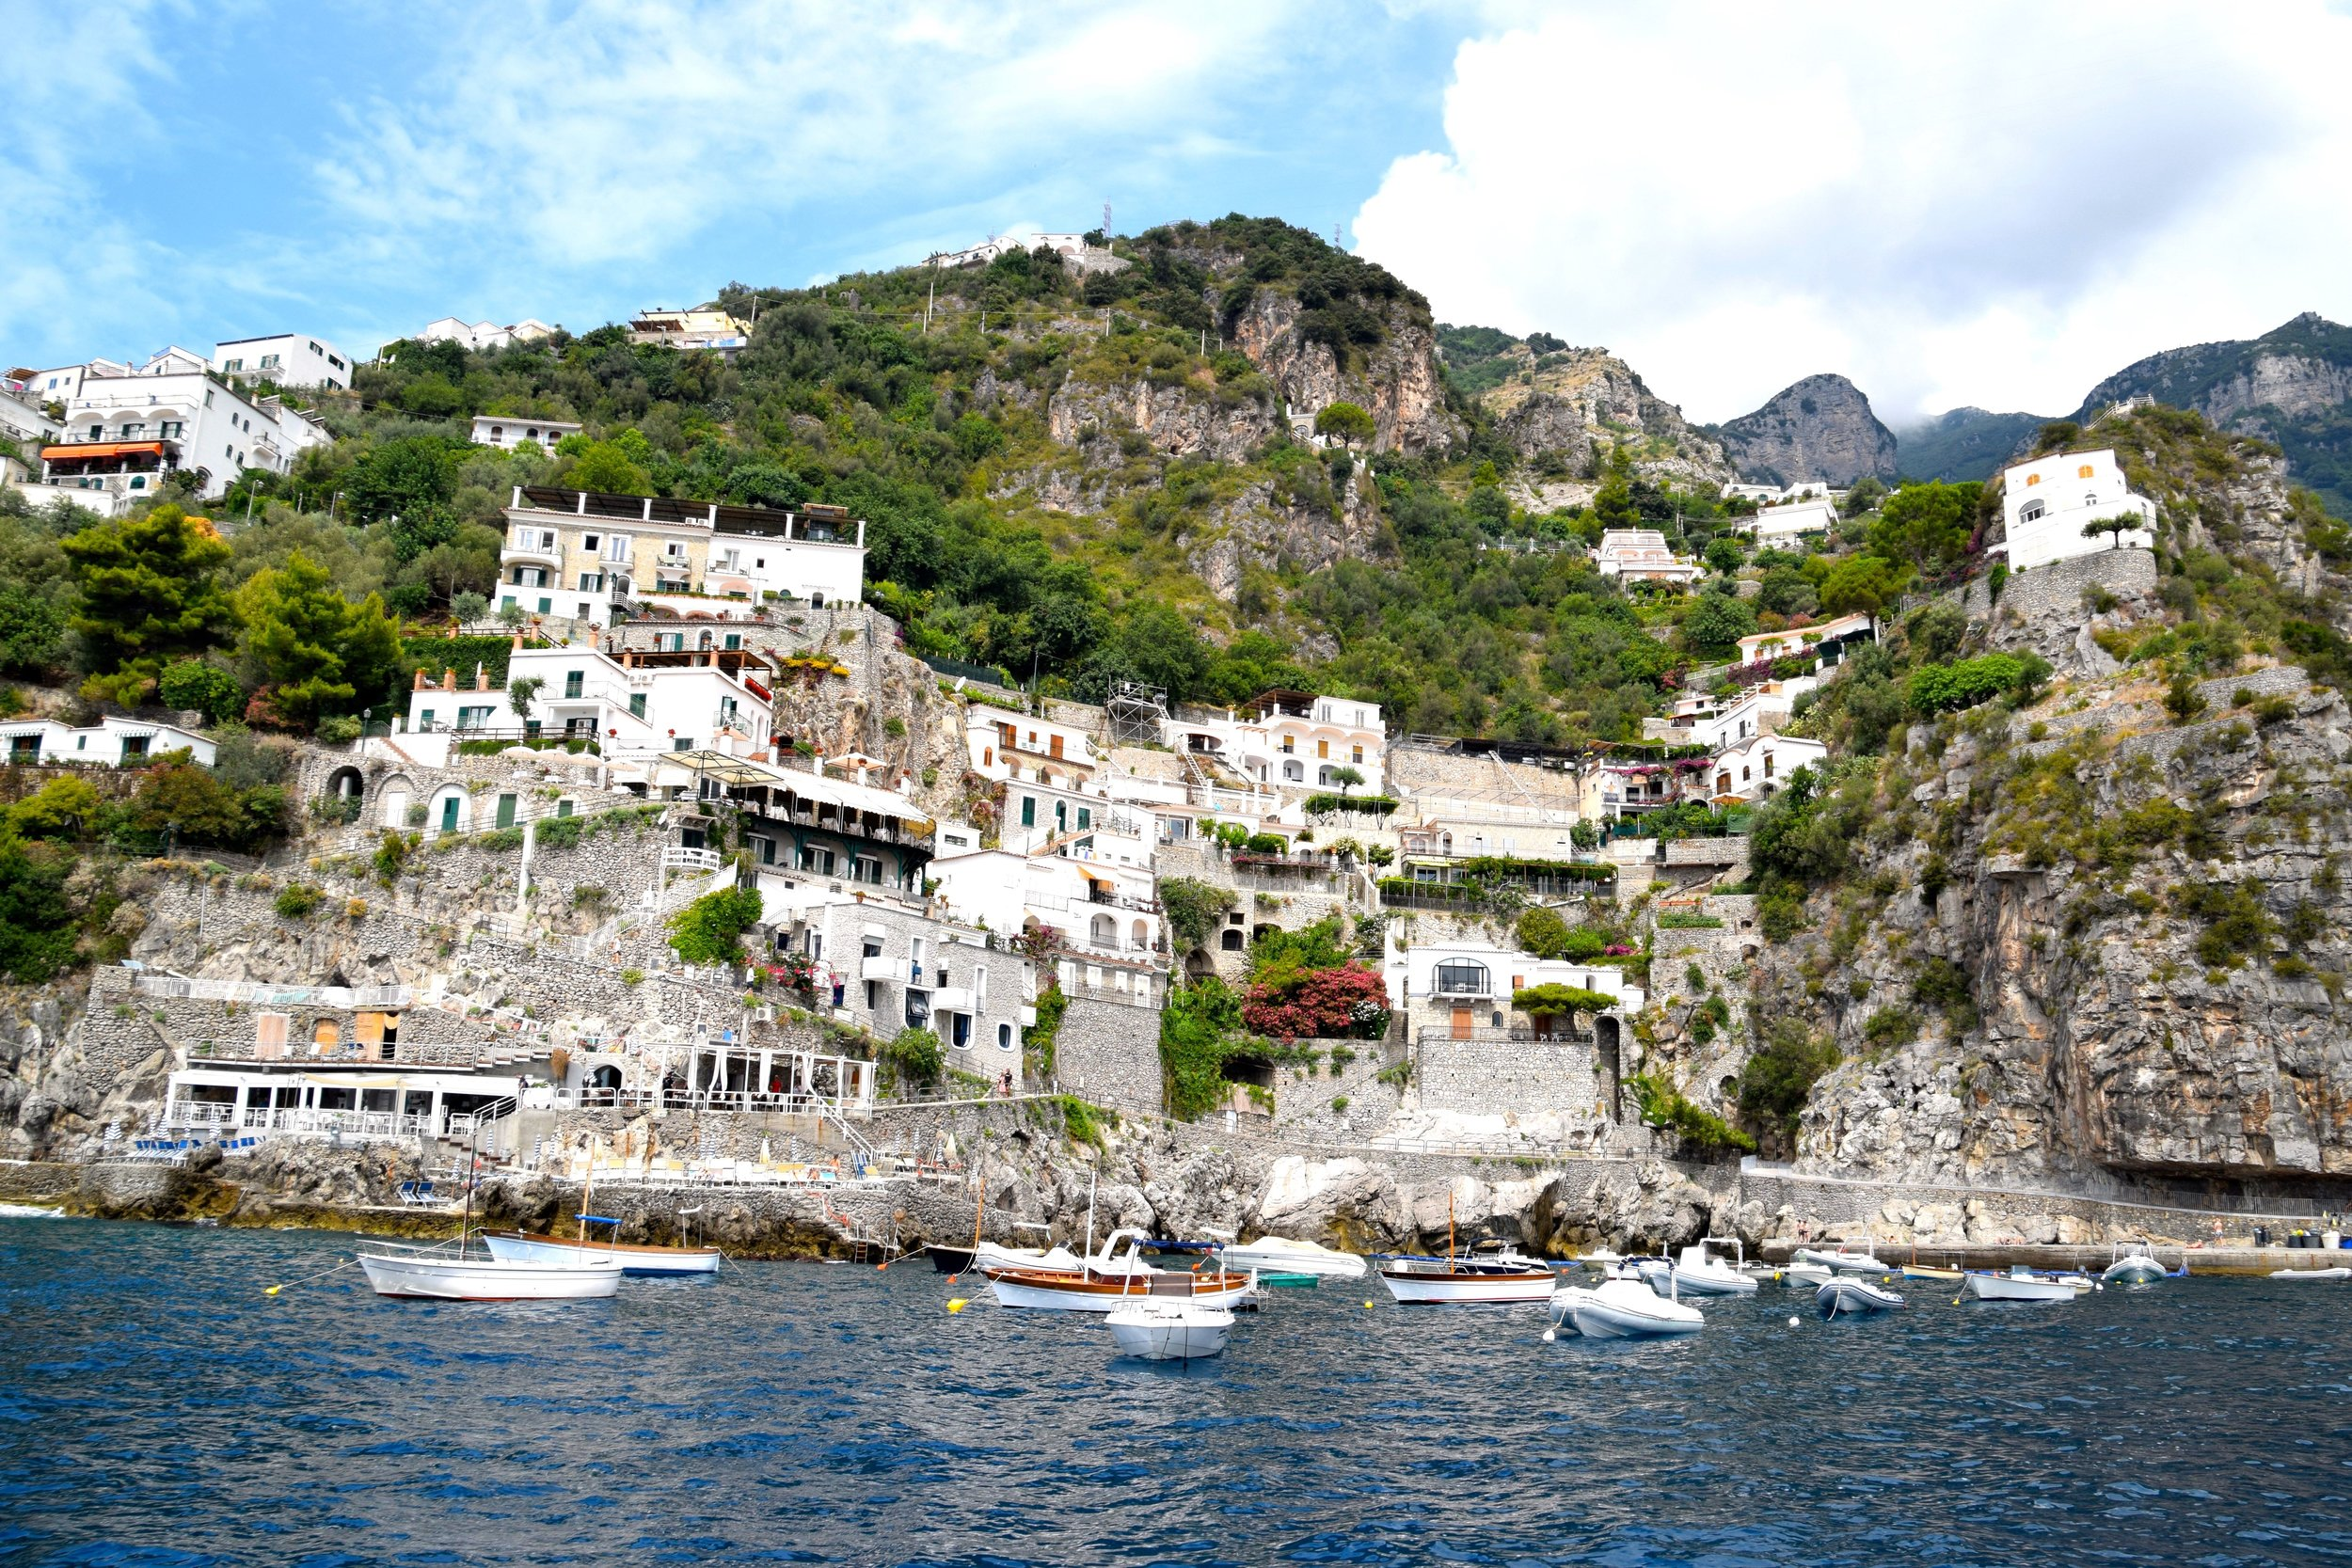 Views of a little coast town from our boat.